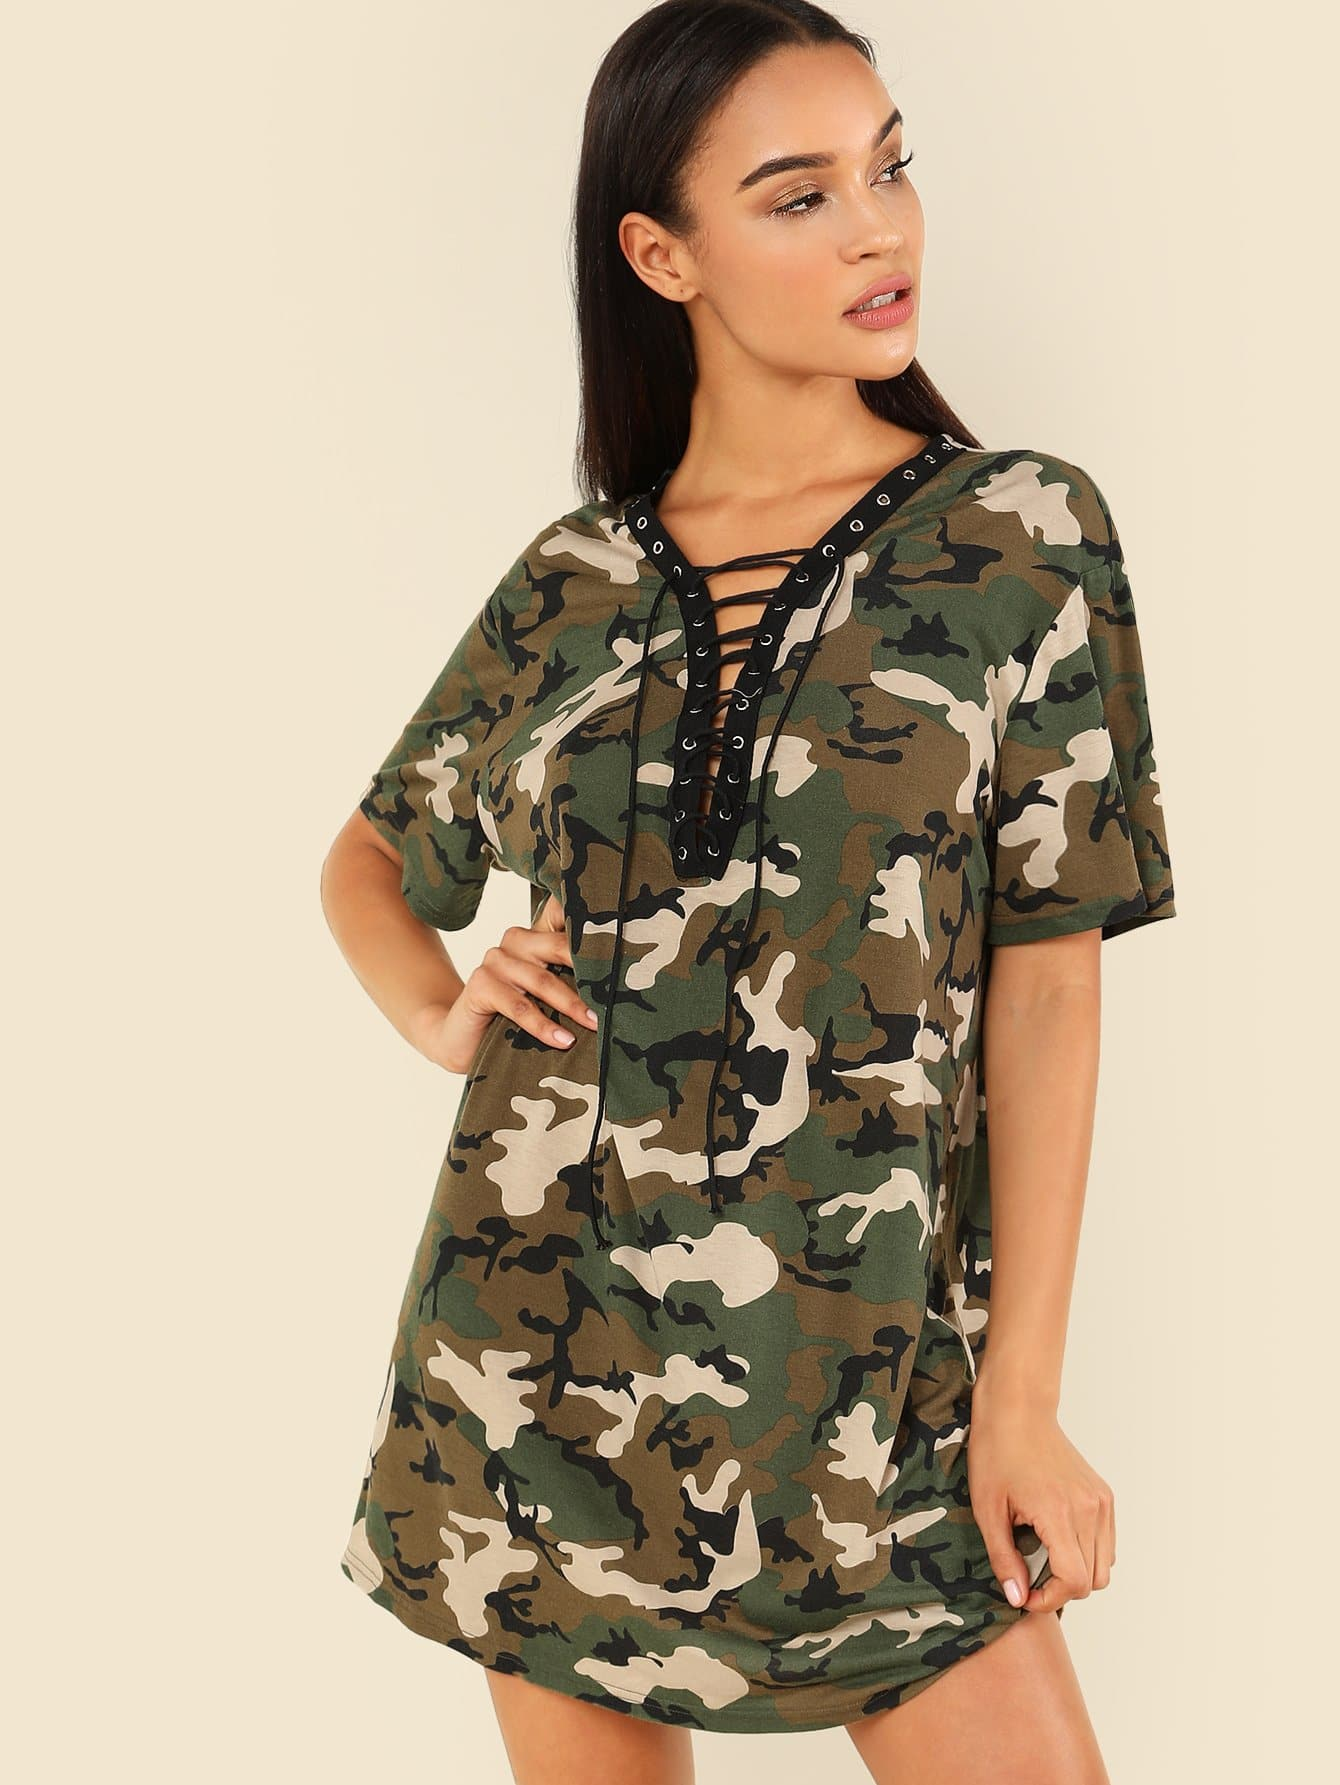 Grommet Lace Up Camo Print Dress continental contisportcontact 3 205 40 r17 84v